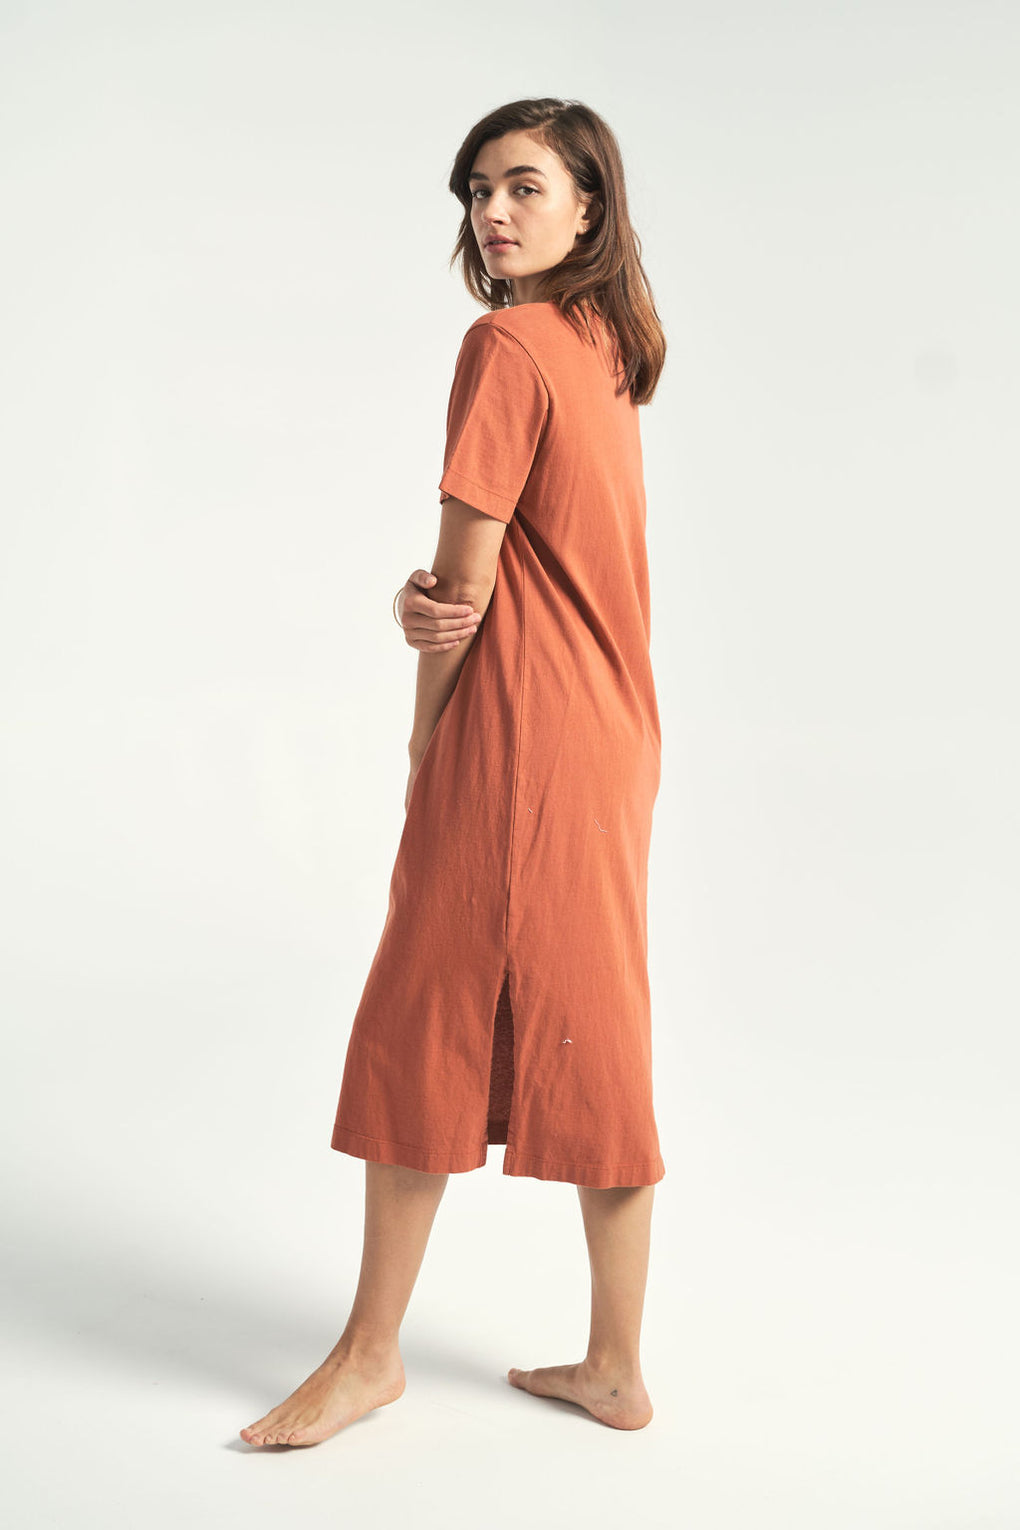 Jesse Kamm-tropicana dress-paprika dress-Idun-St. Paul-kamm dress